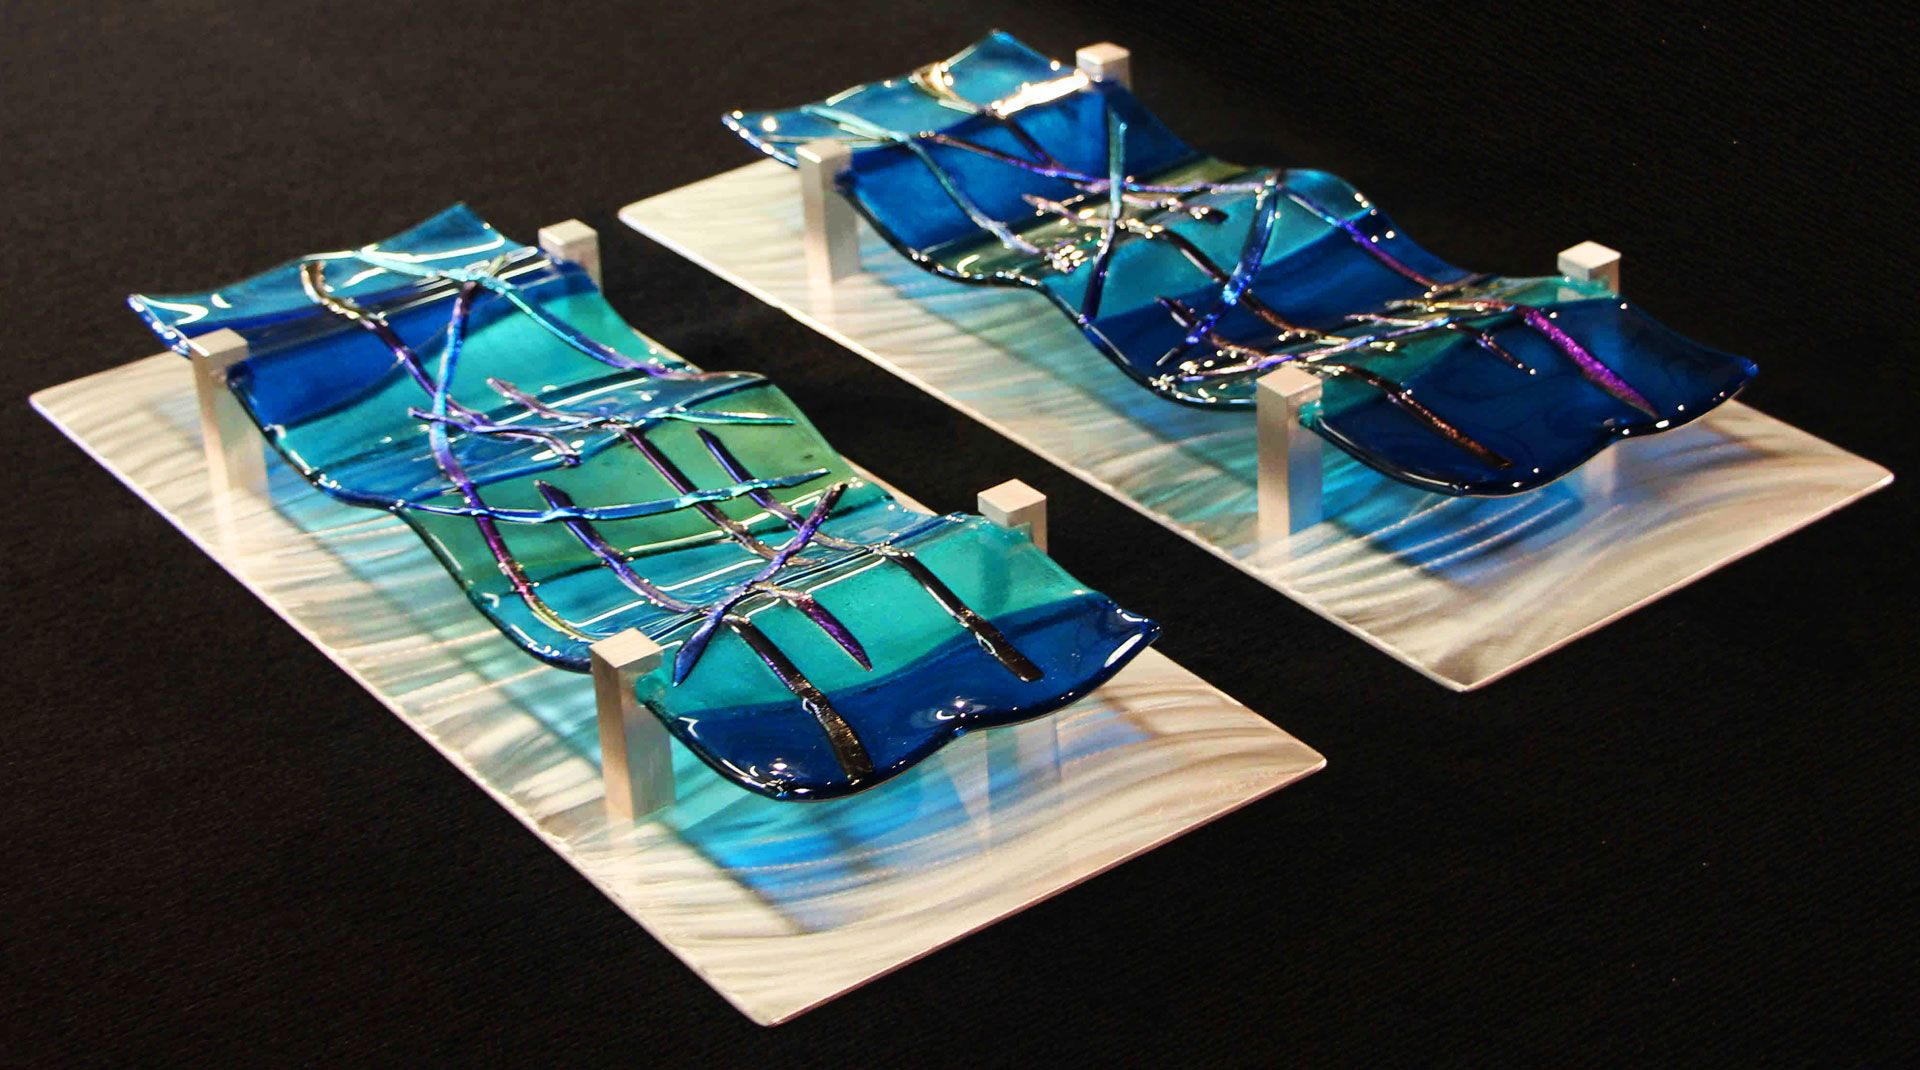 Fused Glass Wall Art by Frank Thompson & Fused Glass Wall Art by Frank Thompson | Fused art | Pinterest ...